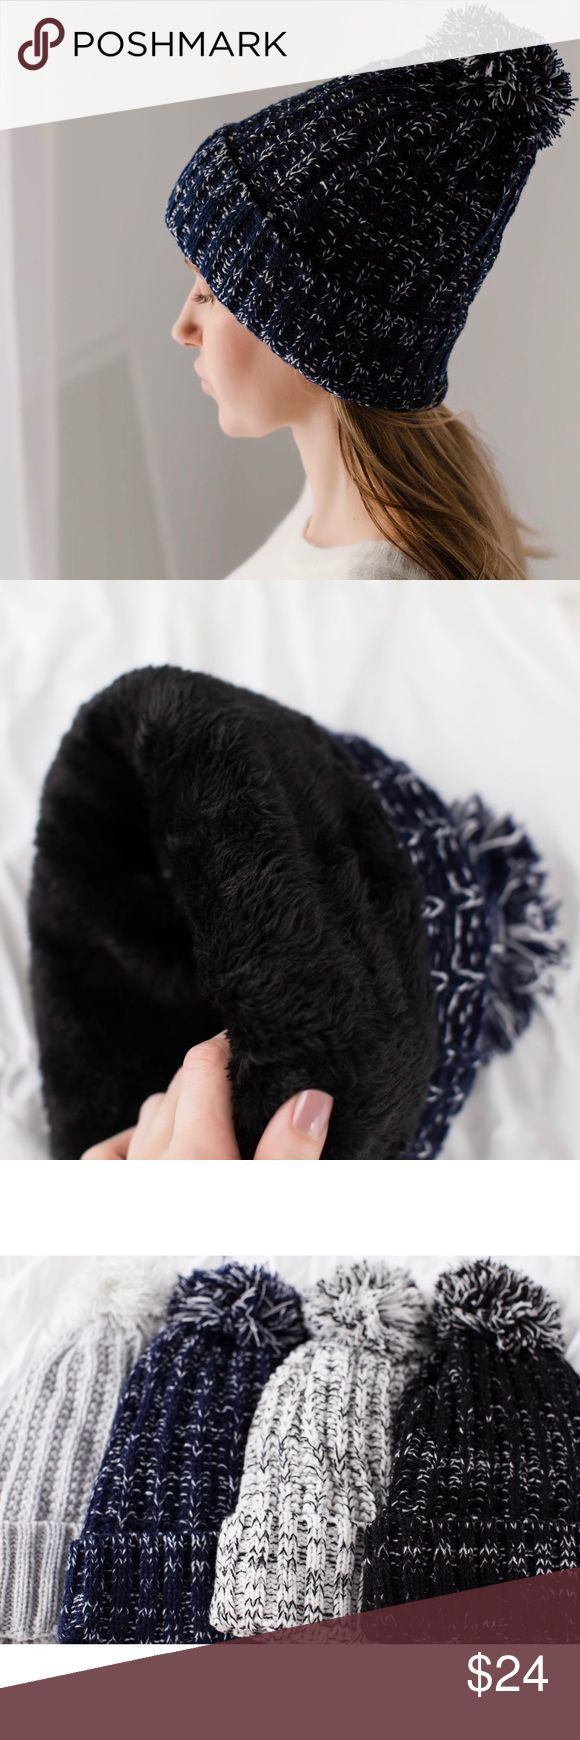 🆕High Line Plush Lined Hat 🌟Buyer favorite🌟 I am happy to bring back my plush lined hats this winter in new colors!  Marled navy/white knit, the interior has black furry plush lining which is INCREDIBLE! So soft & warm. Acrylic material, cozy and not itchy. Once you wear this, no other hat will suffice when it starts to snow ☃️Also in black, white, gray.   ▫️Price is firm 📷 Photos are my own 11thstreet Accessories Hats